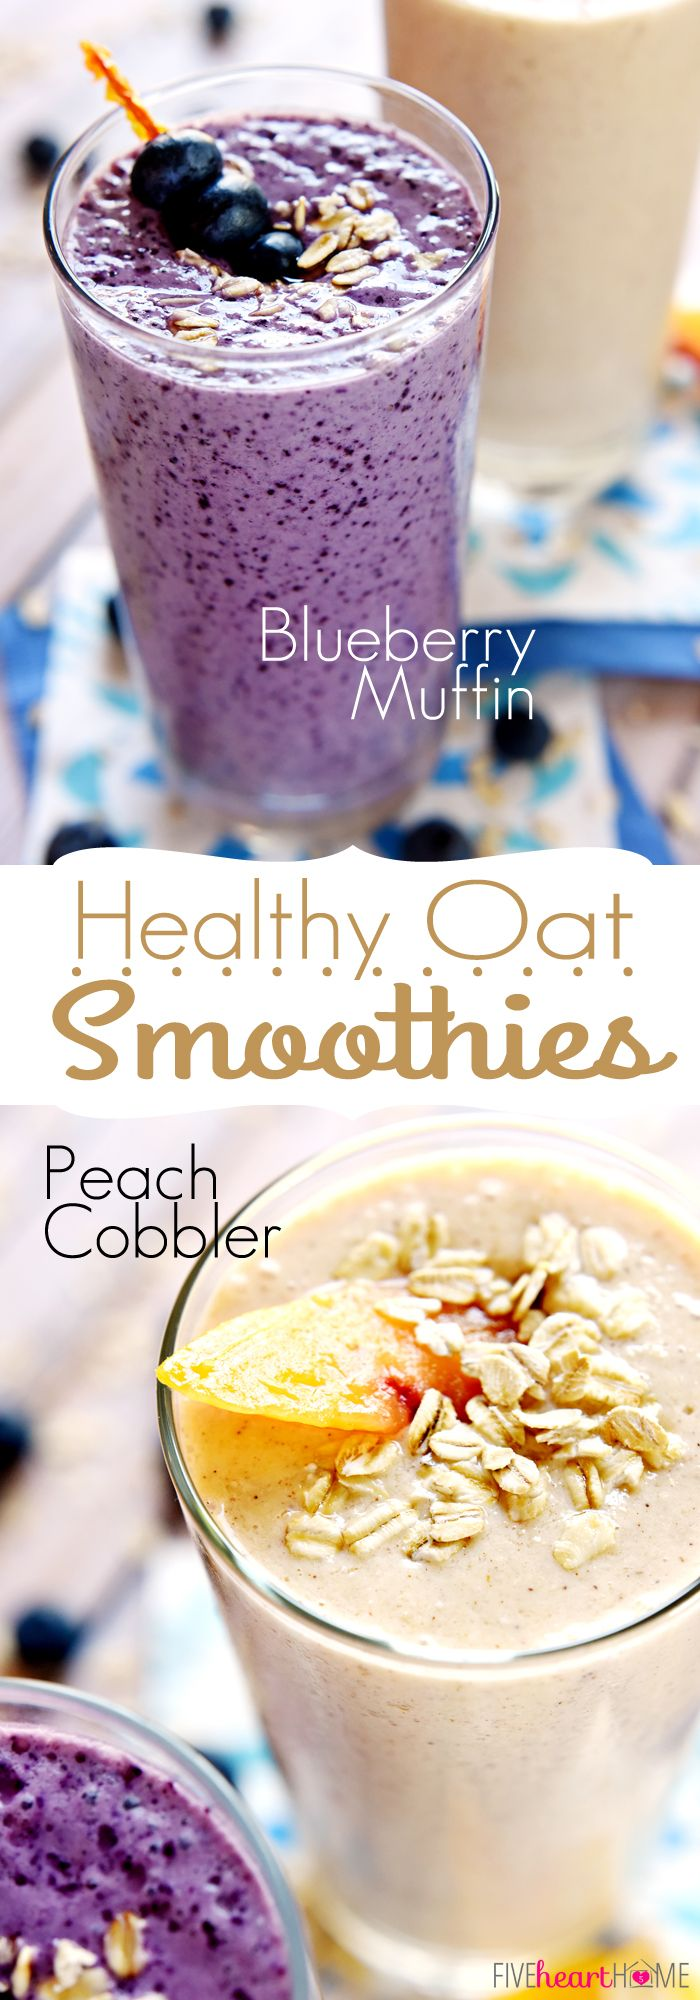 Healthy Oat Smoothies ~ Blueberry Muffin & Peach Cobbler Flavors